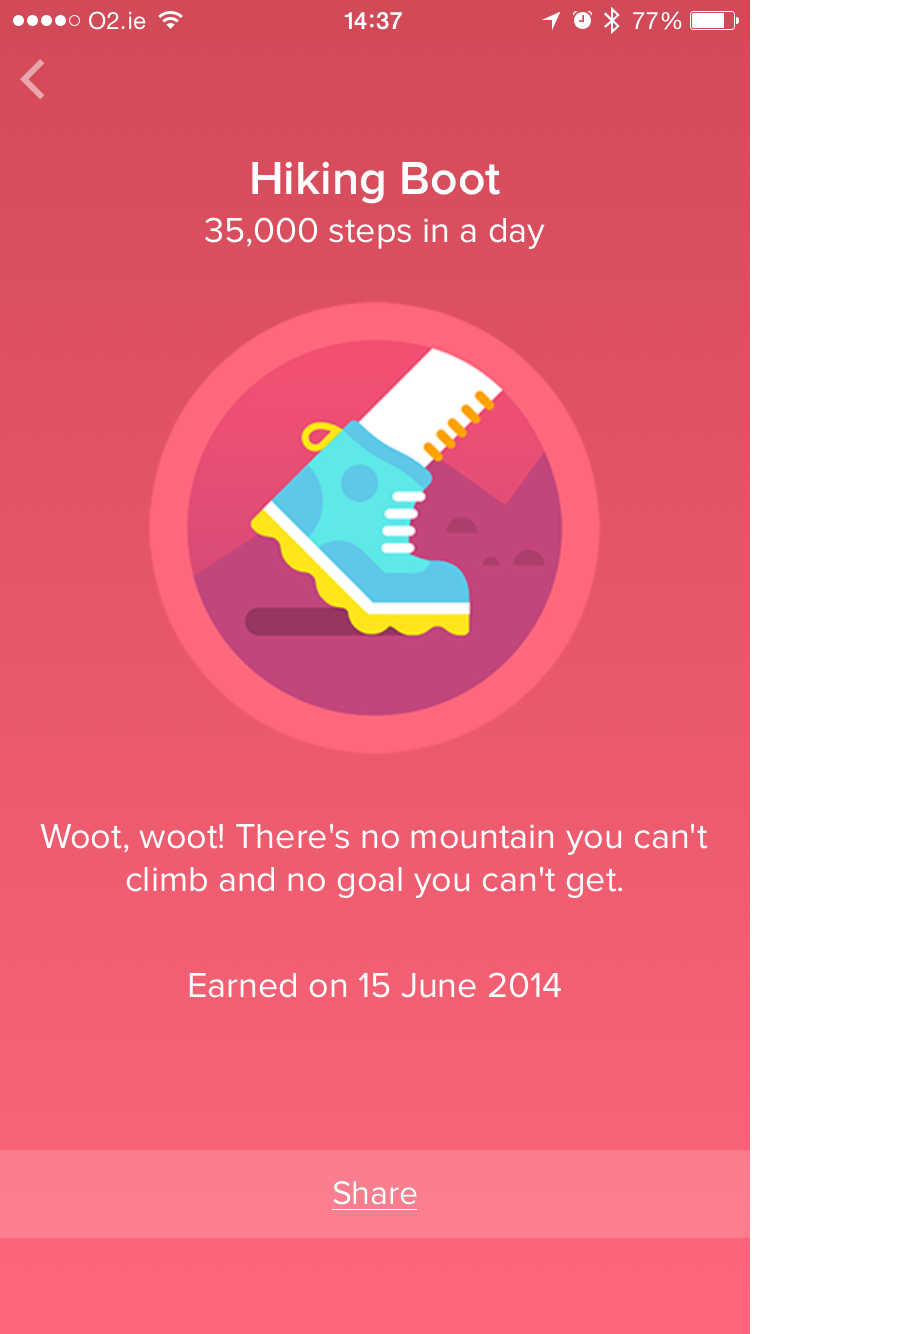 FitBit hiking boot award